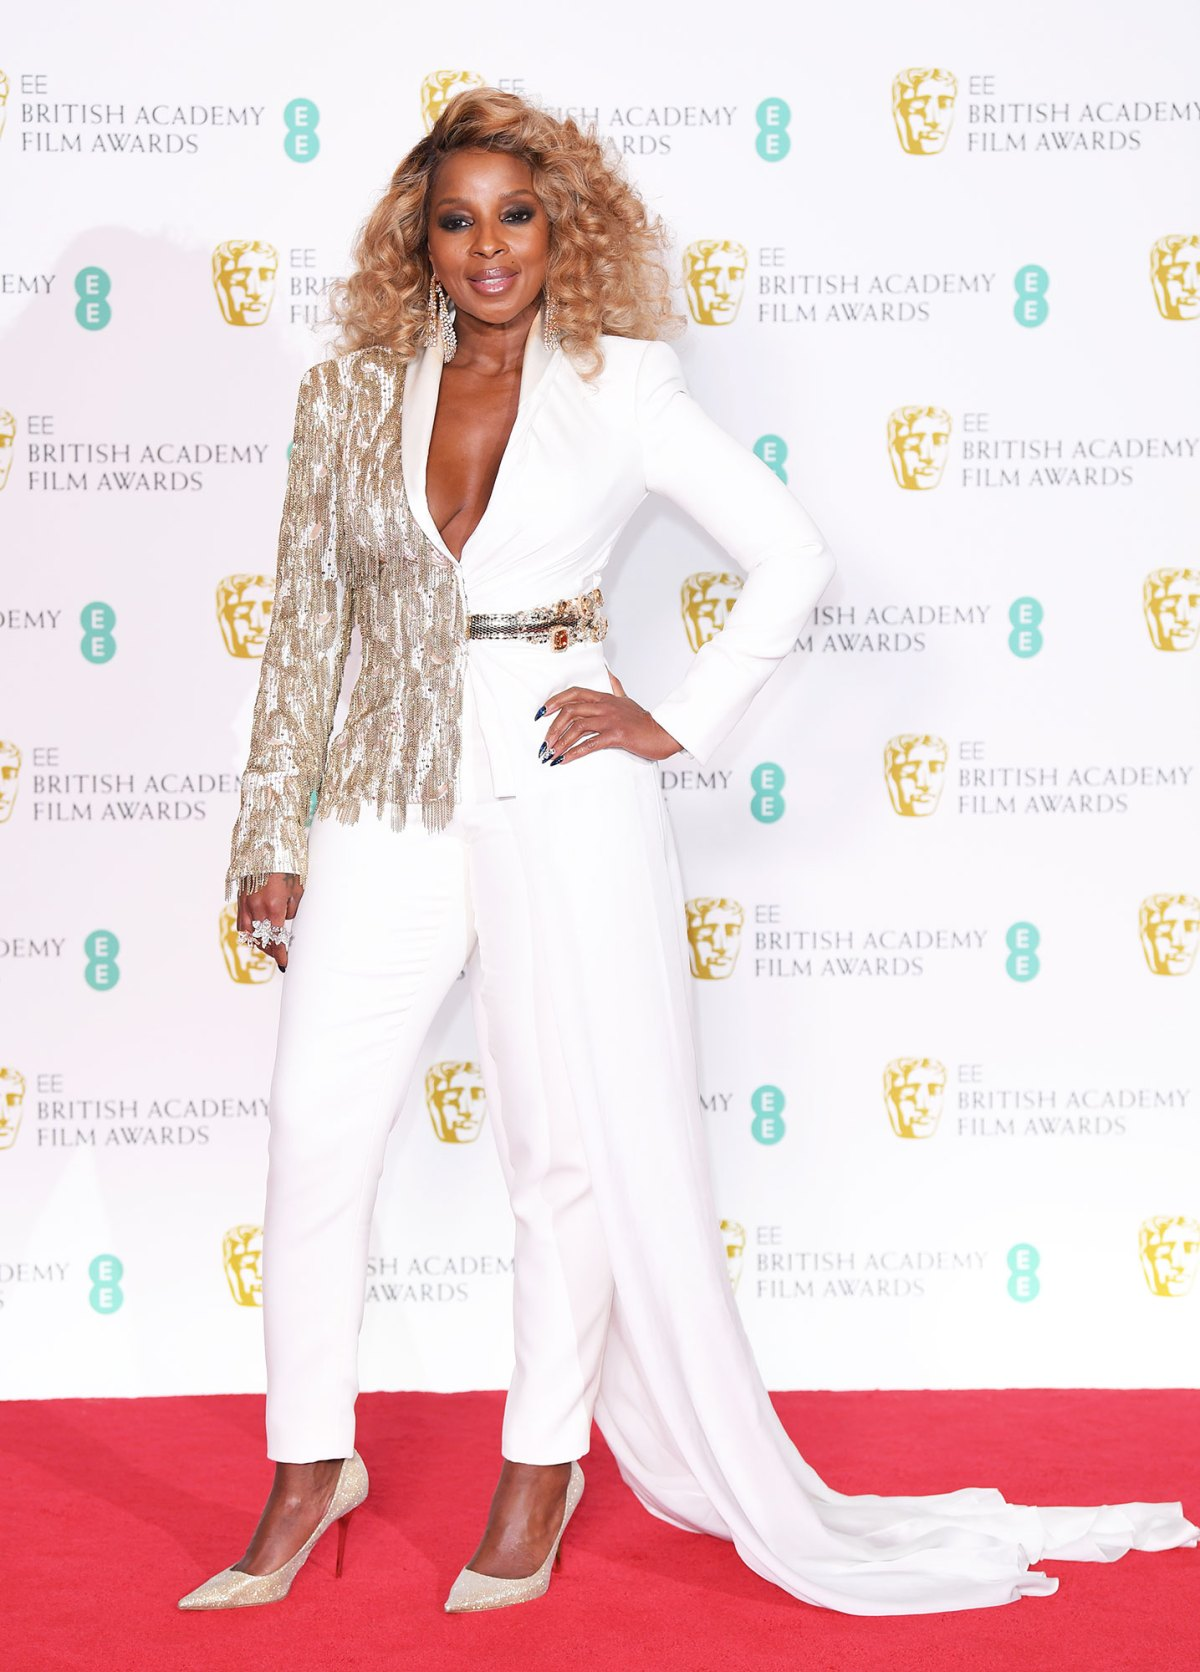 Baftas 2019 Red Carpet See Celebs Dresses Gowns